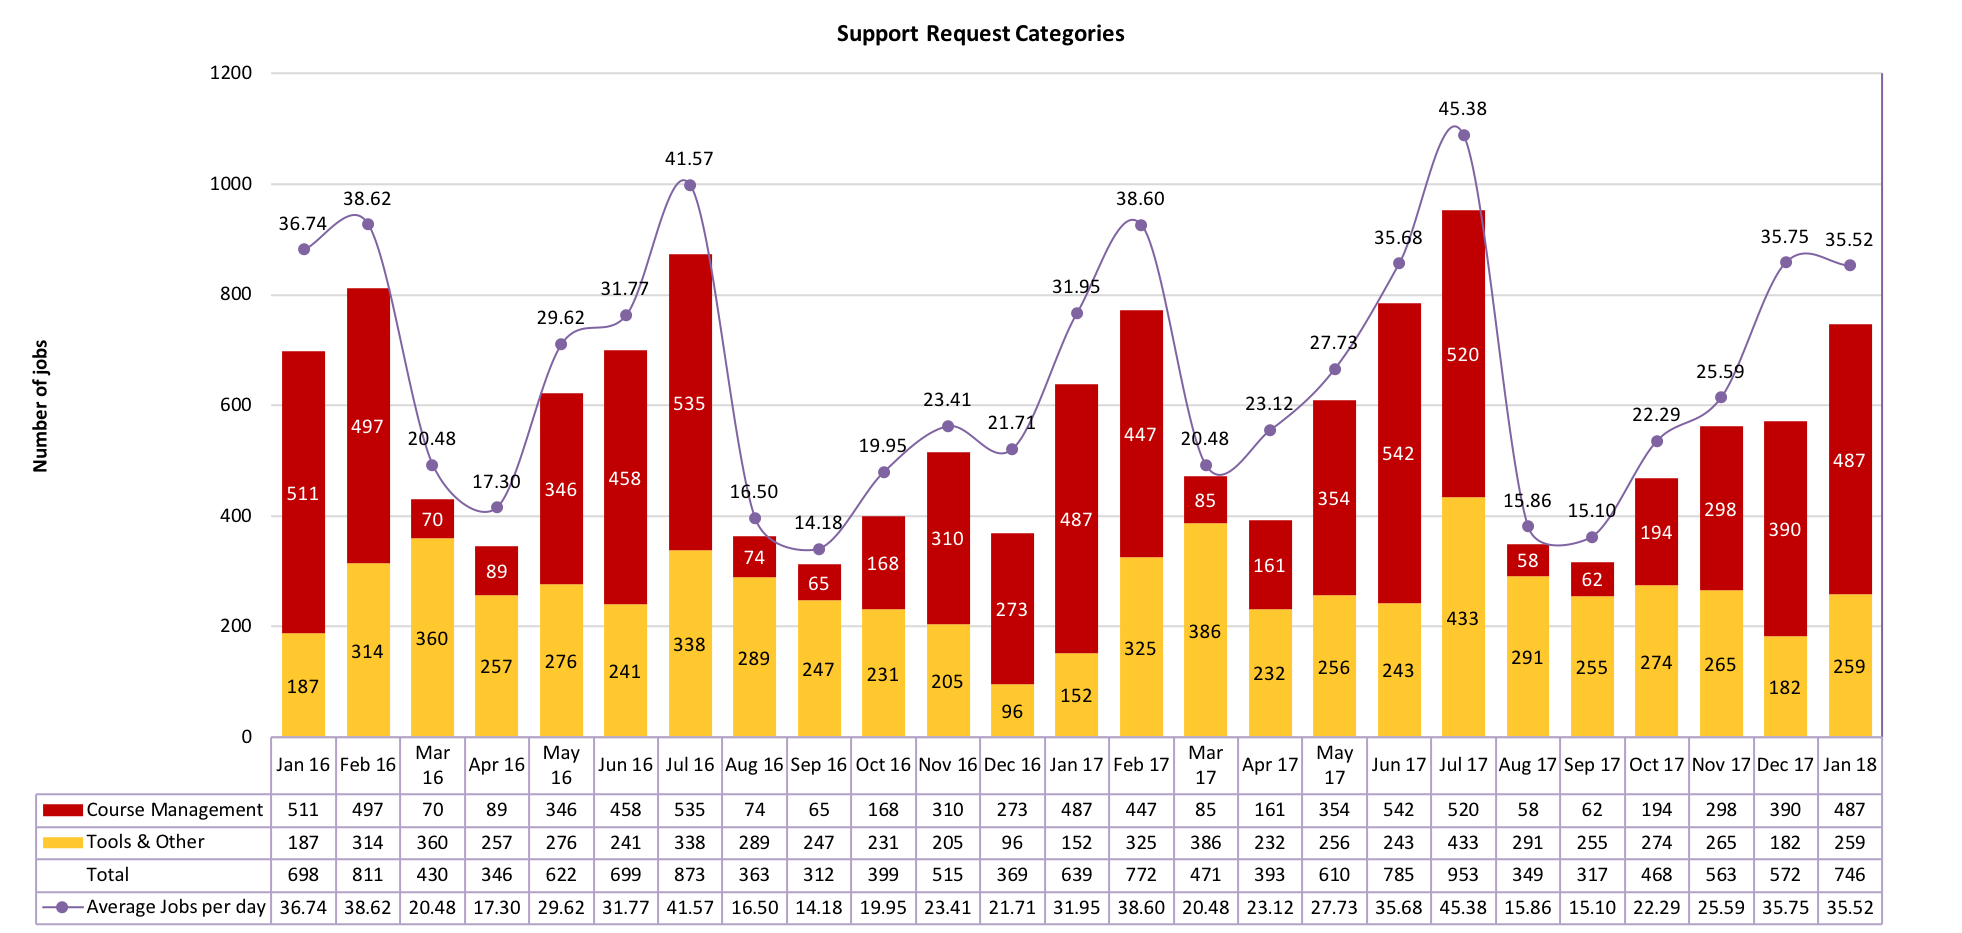 Chart of Support Request Categories from January 2016 to January 2018